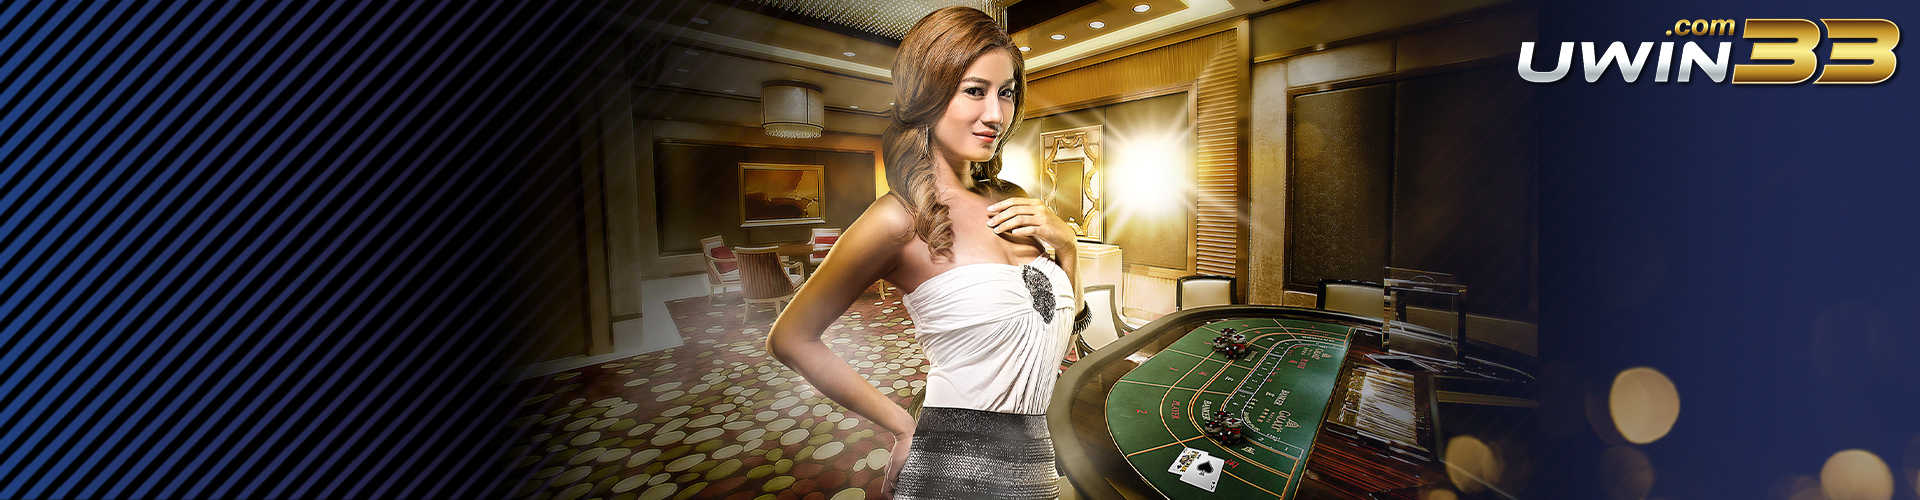 Use mobile to play casino games